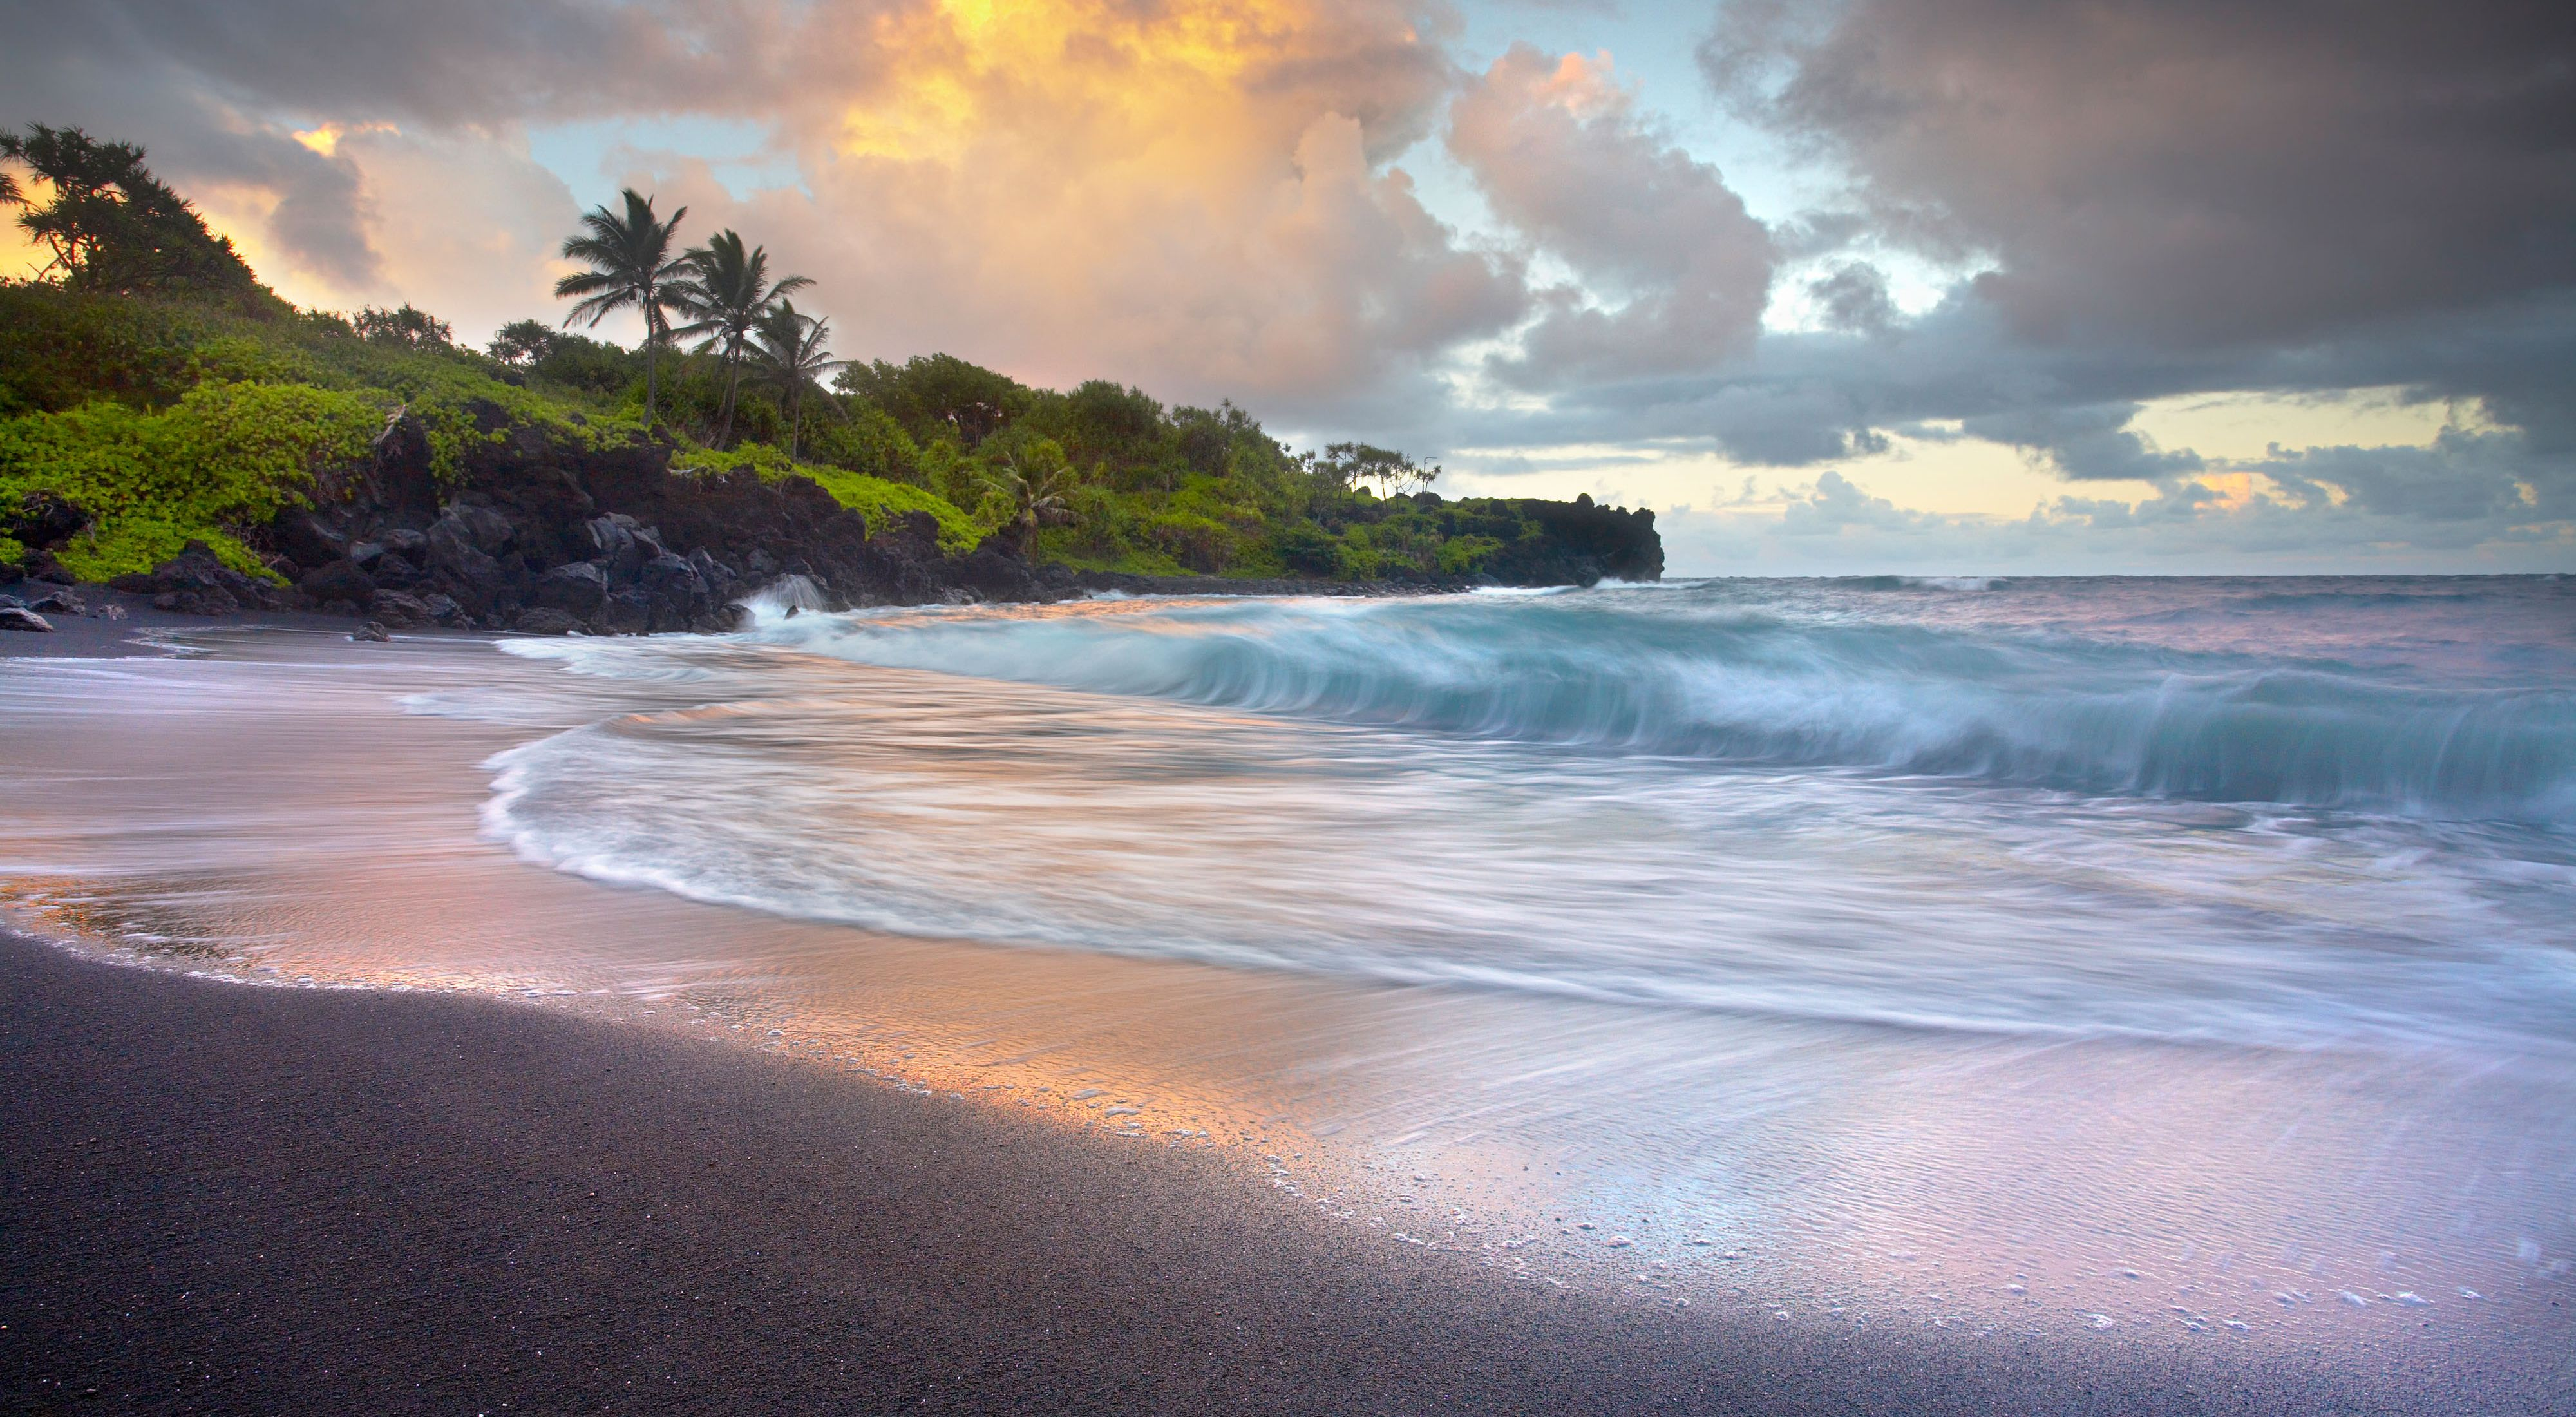 Waves crash on the black sand beach of Waianapanapa Sands with a rocky outcrop topped with lush greenery in the distance.